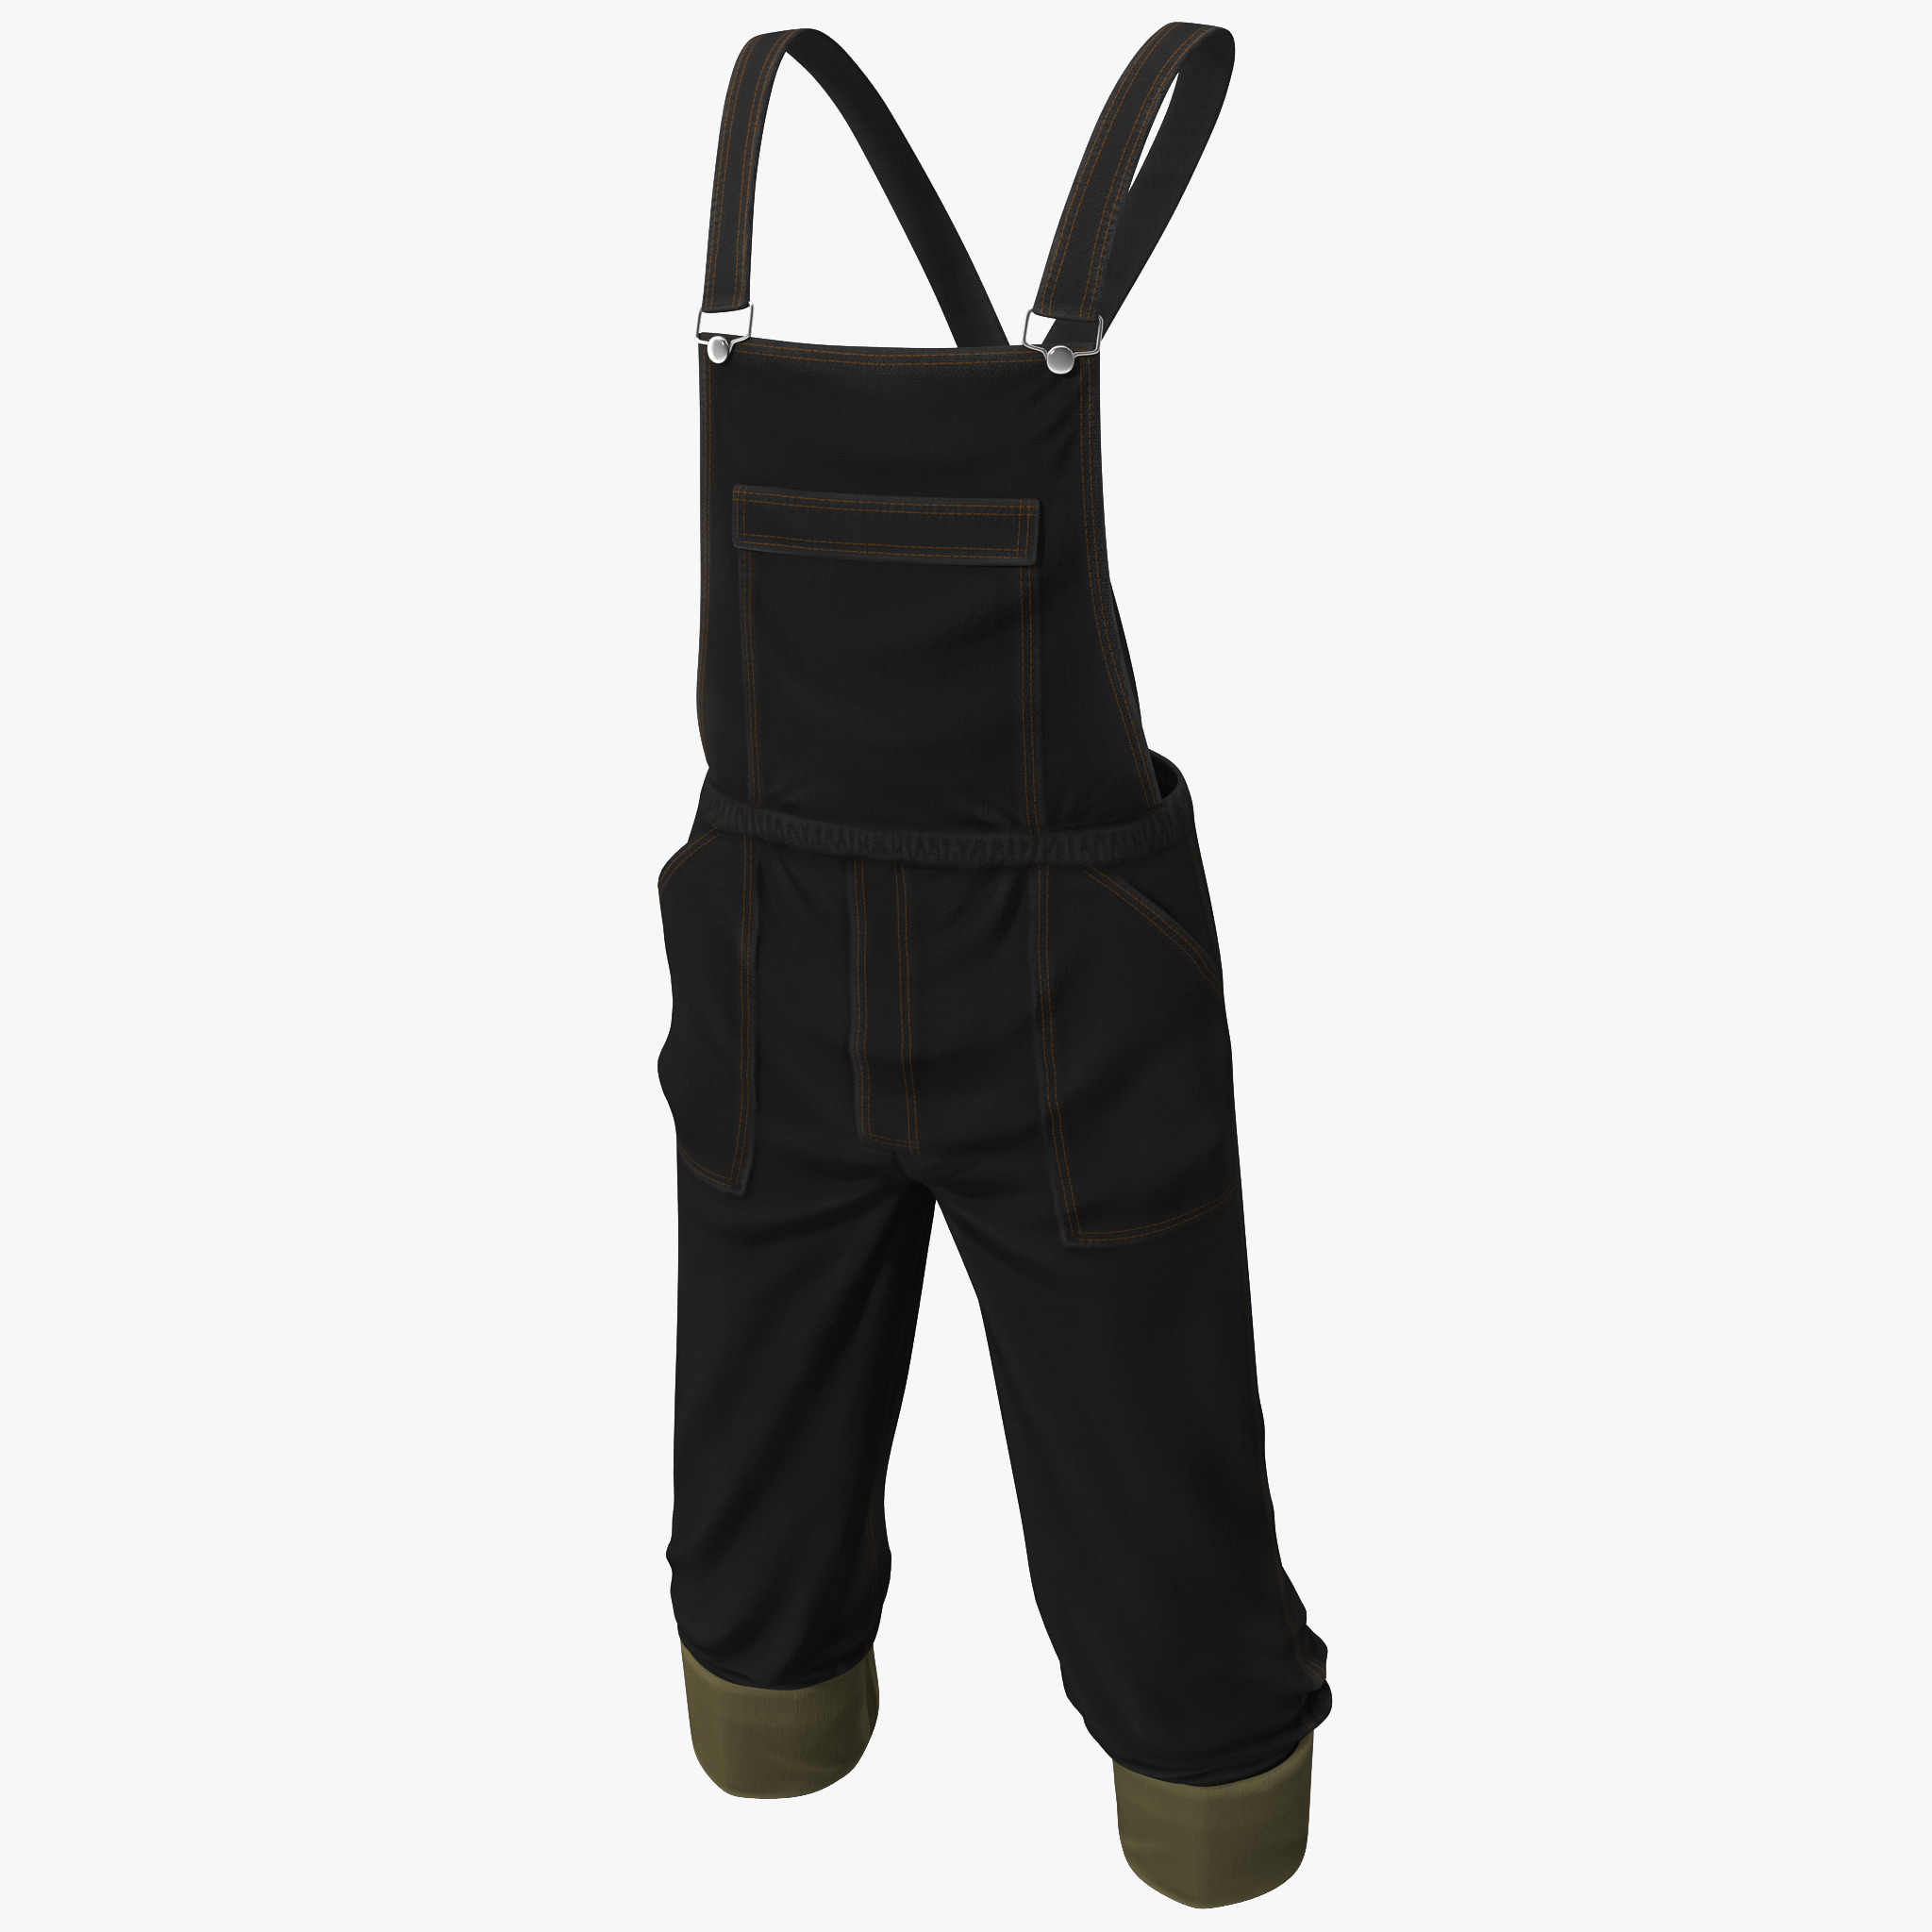 Overalls Jeans_1.jpg